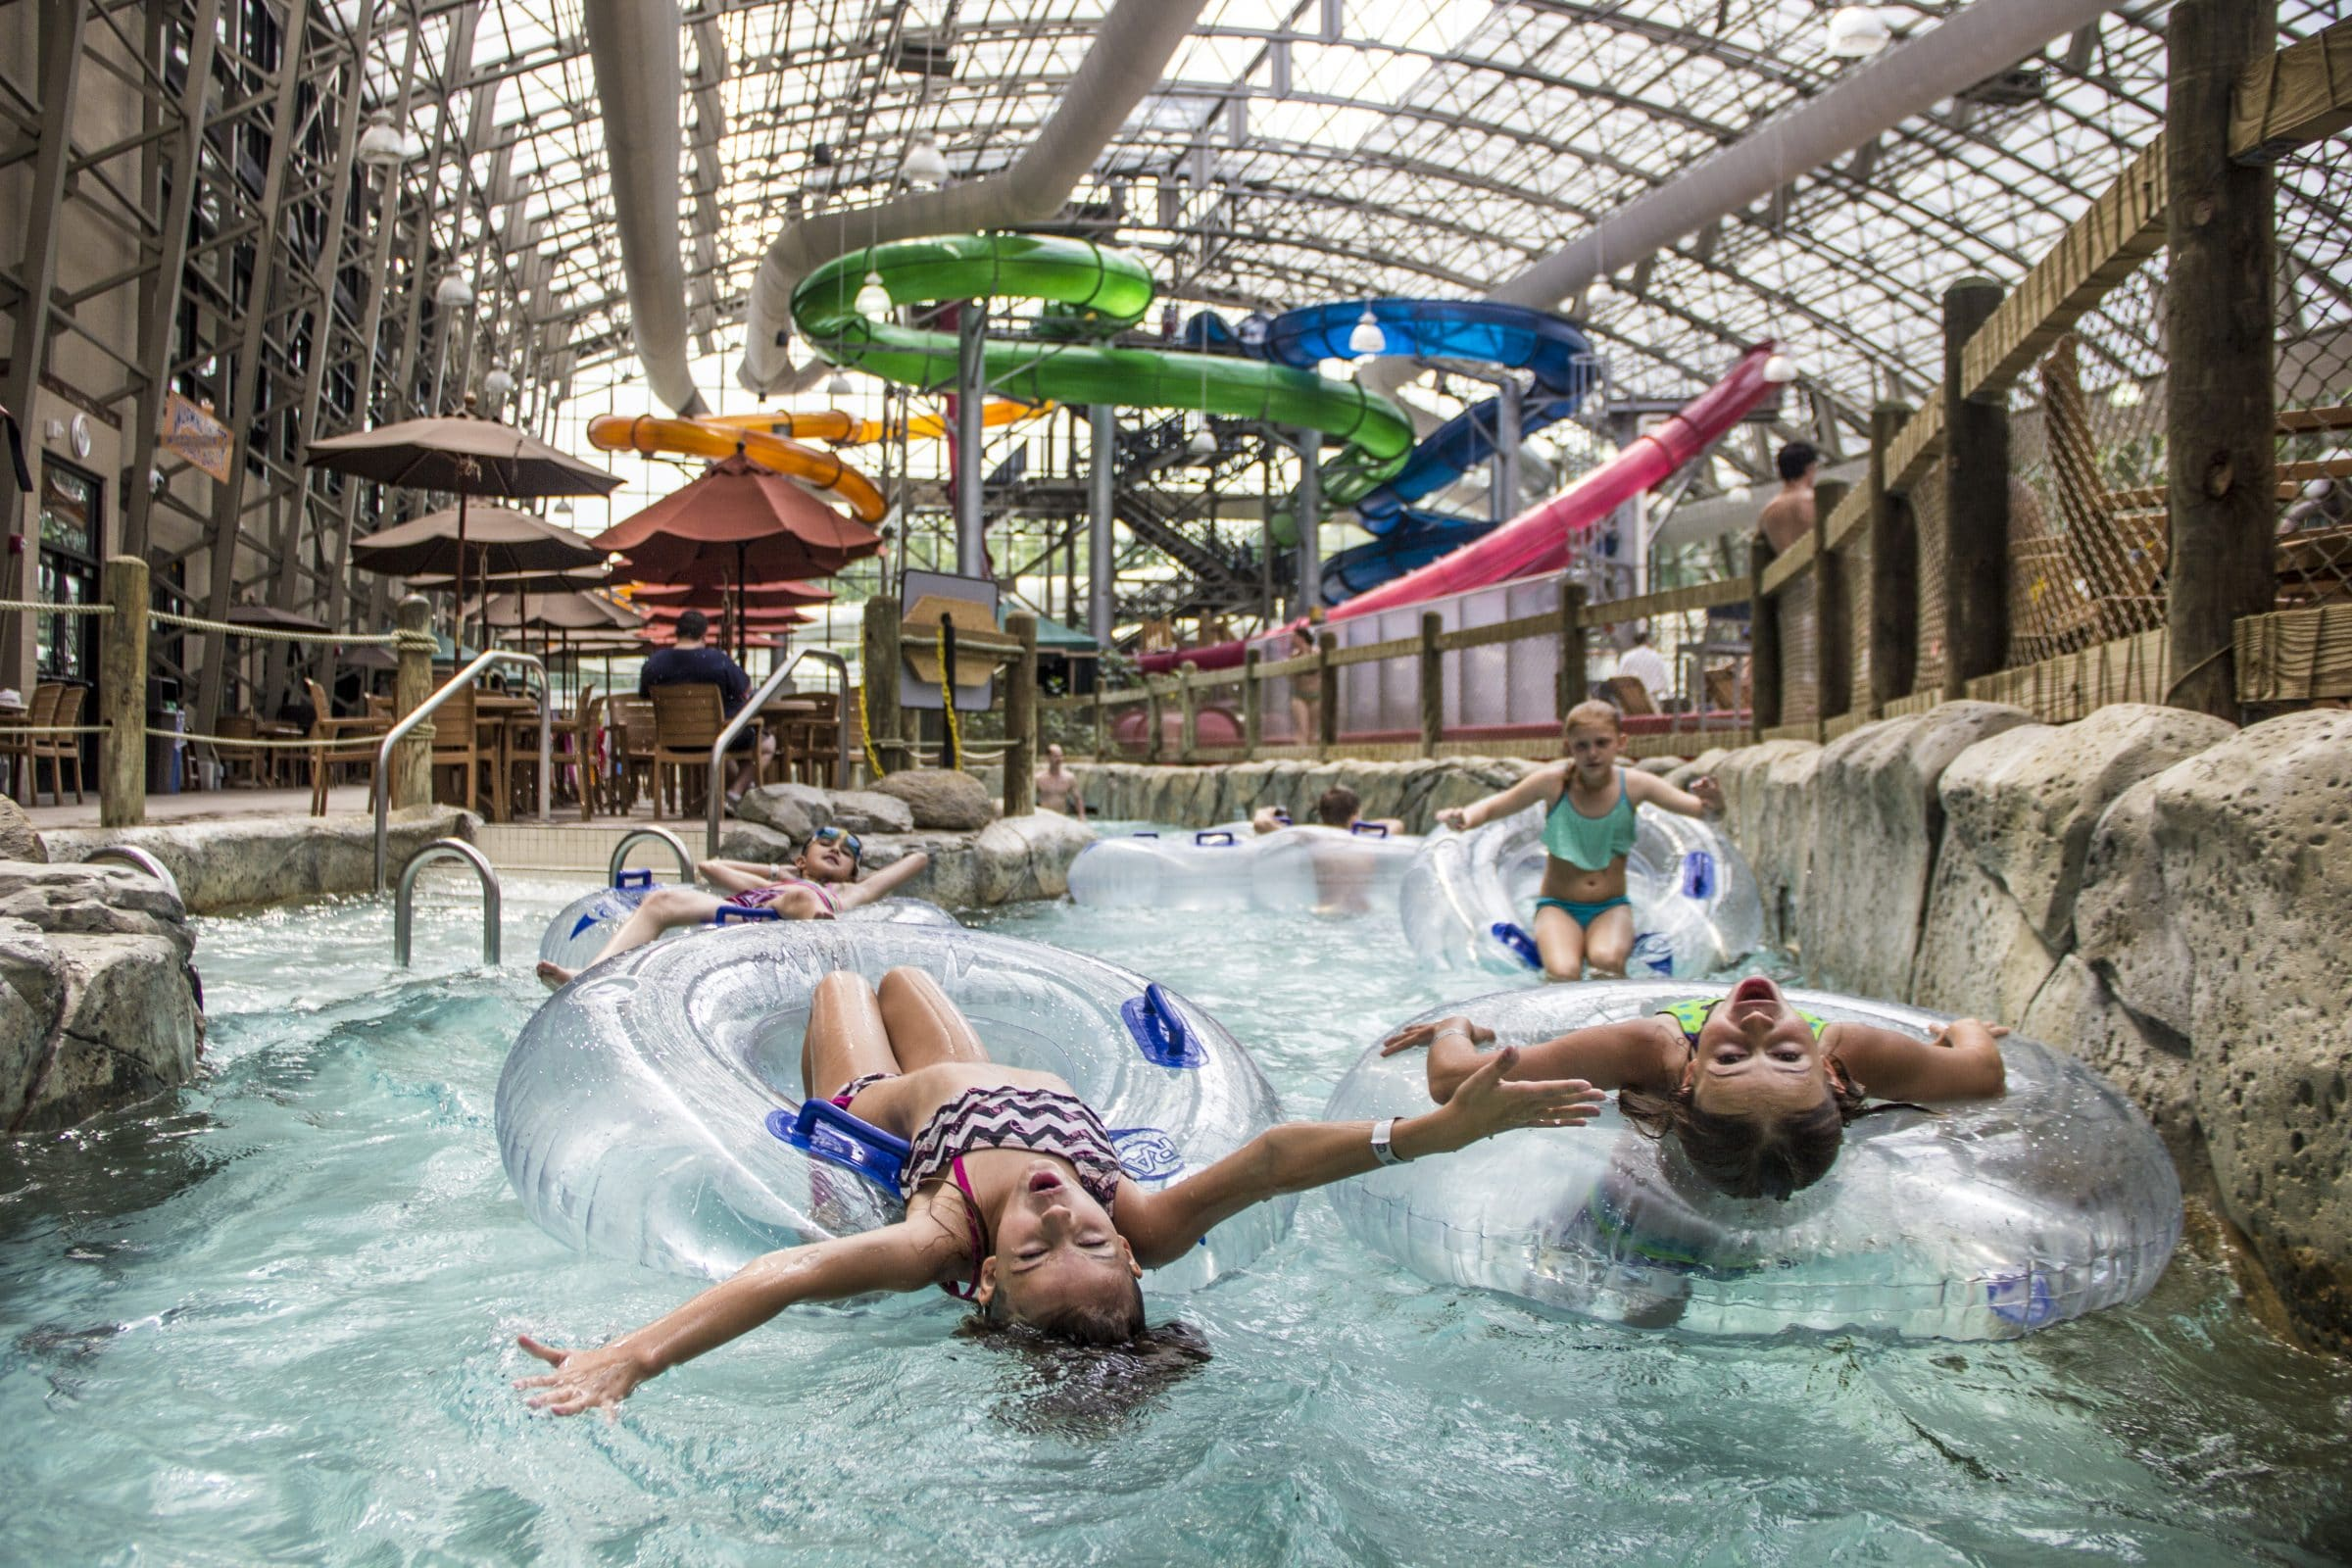 Waterpark Indoor Air Quality in Times of COVID